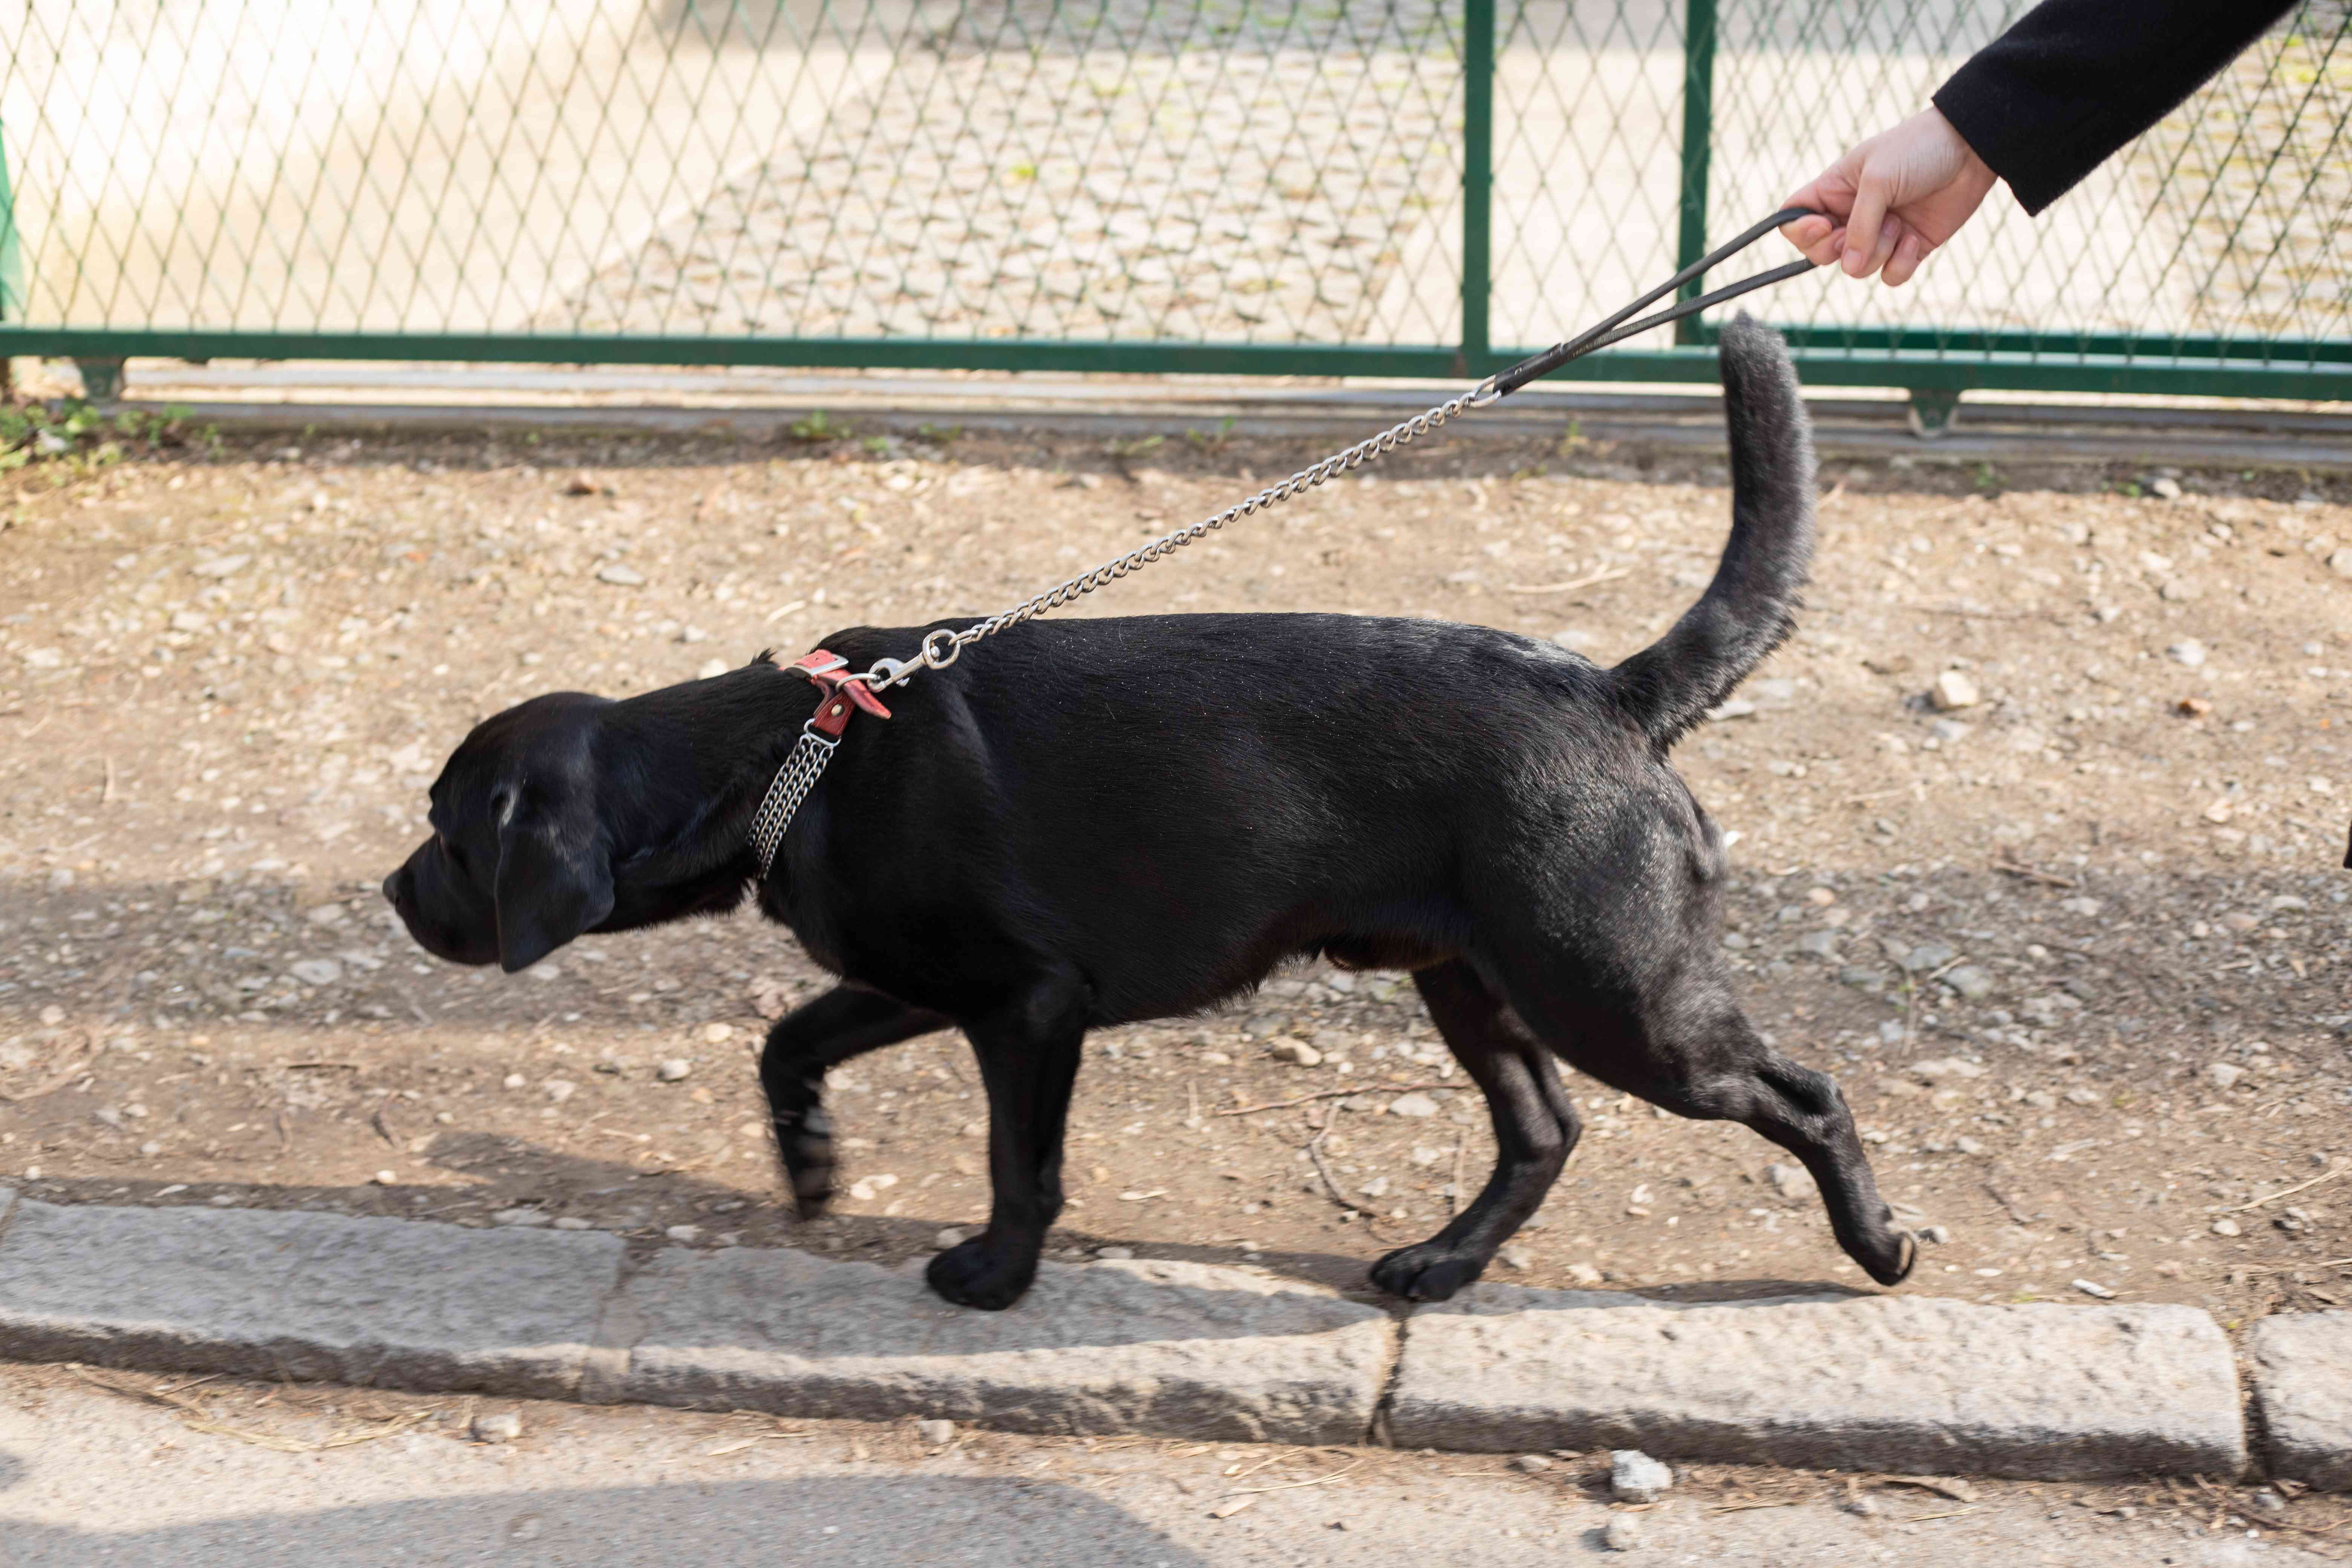 dog on chain leash not being allowed to smell on dirt walk